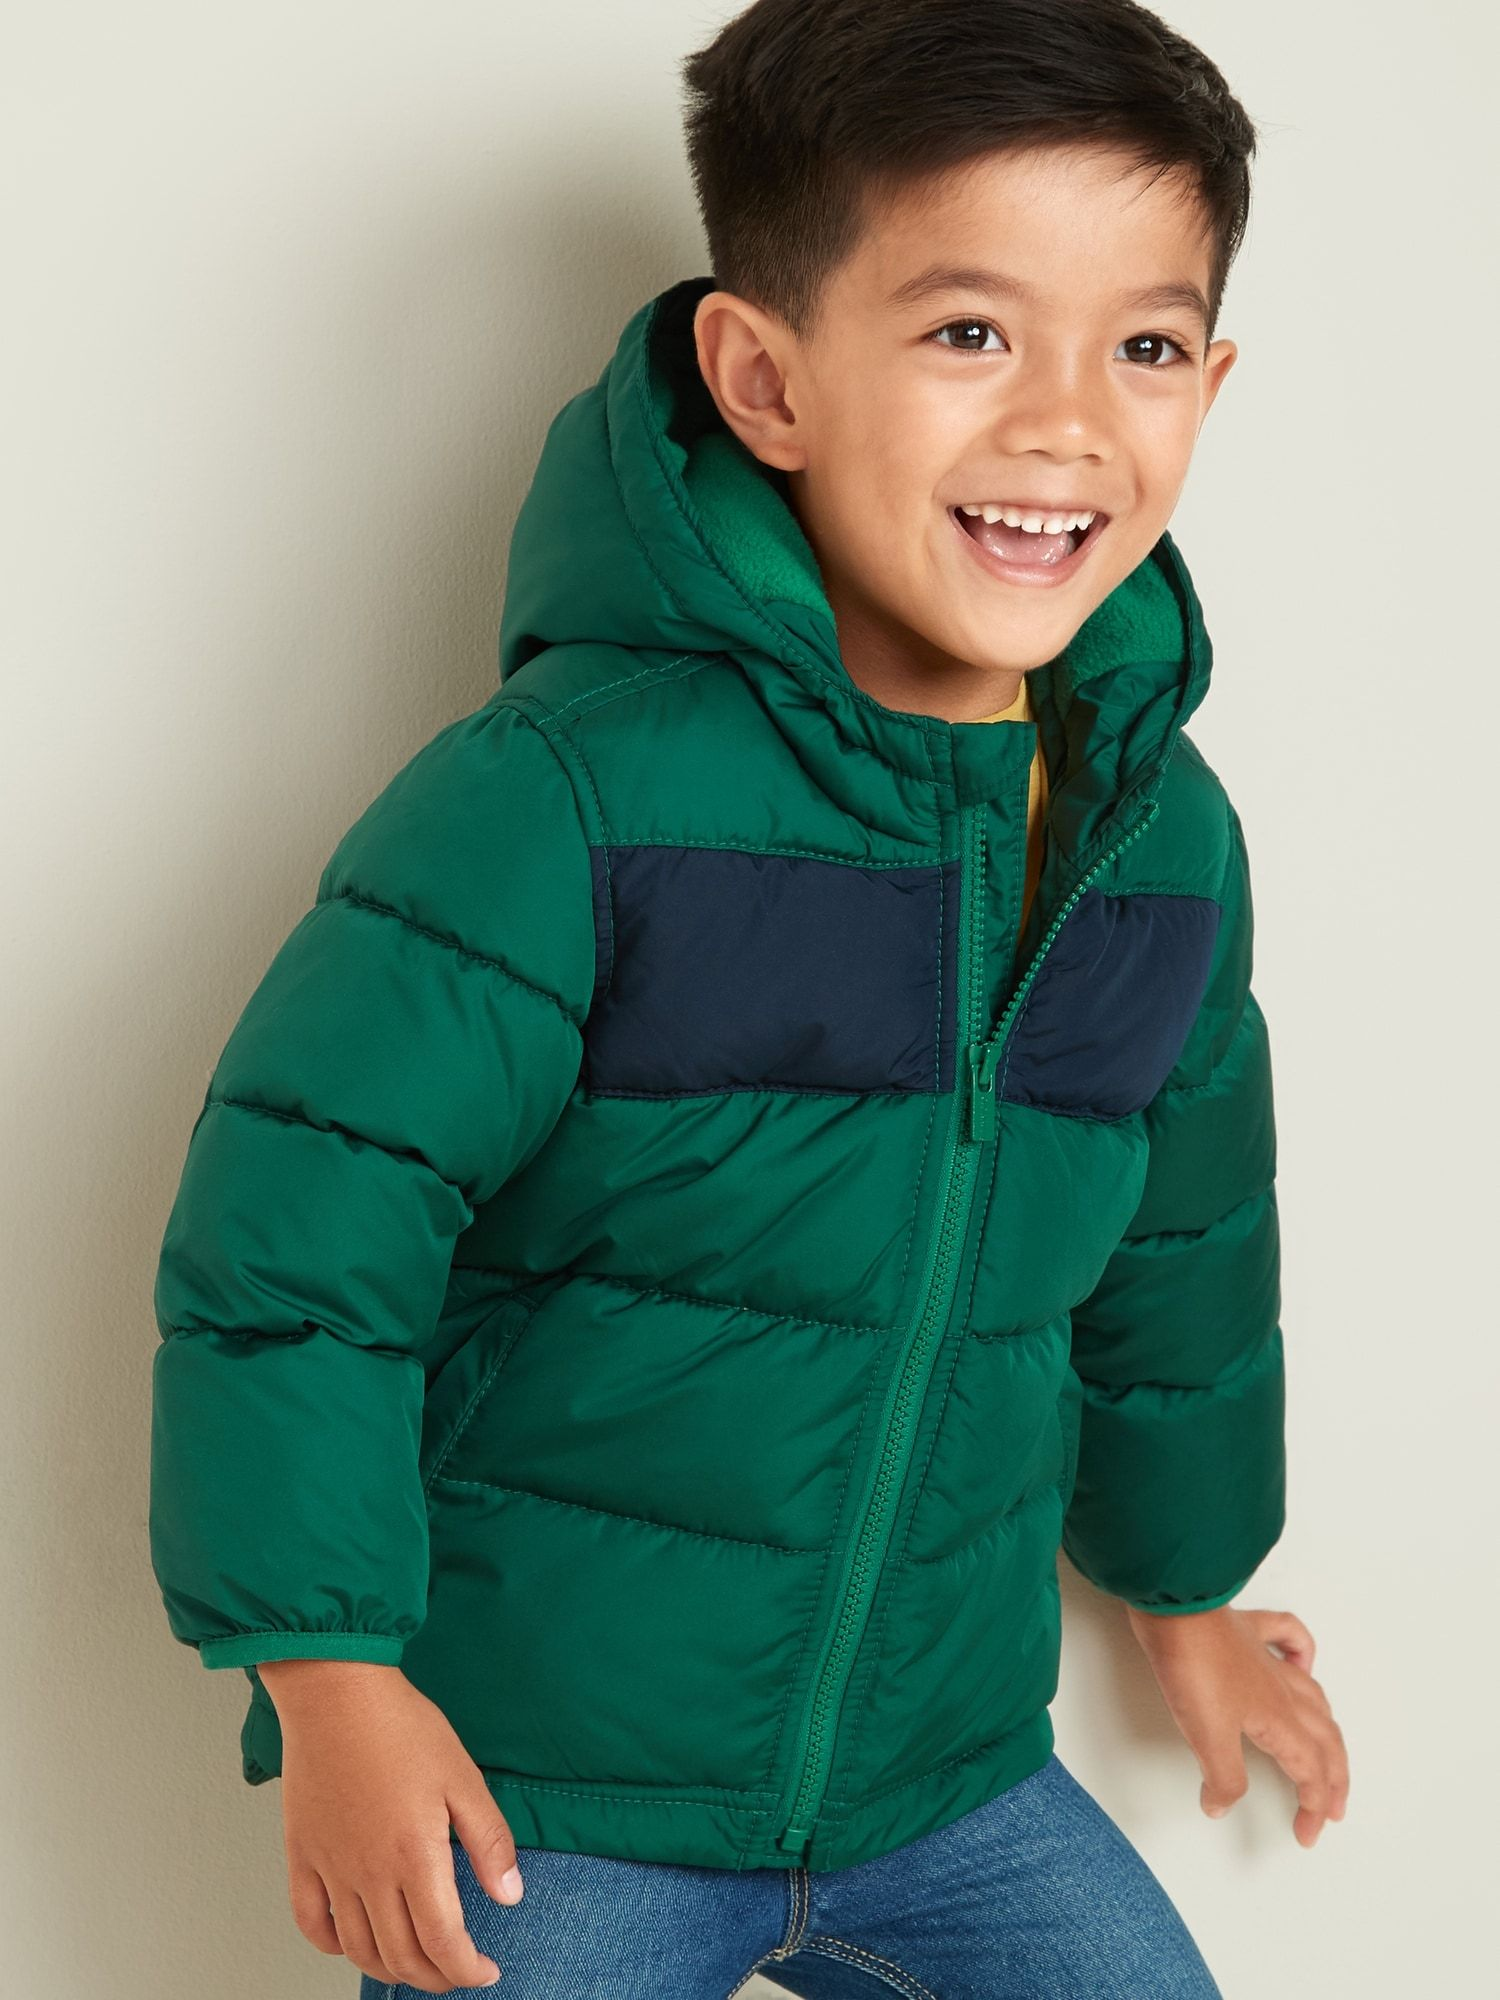 Frost Free Color Blocked Puffer Jacket For Toddler Boys Old Navy Old Navy Old Navy Jackets Puffer [ 2000 x 1500 Pixel ]